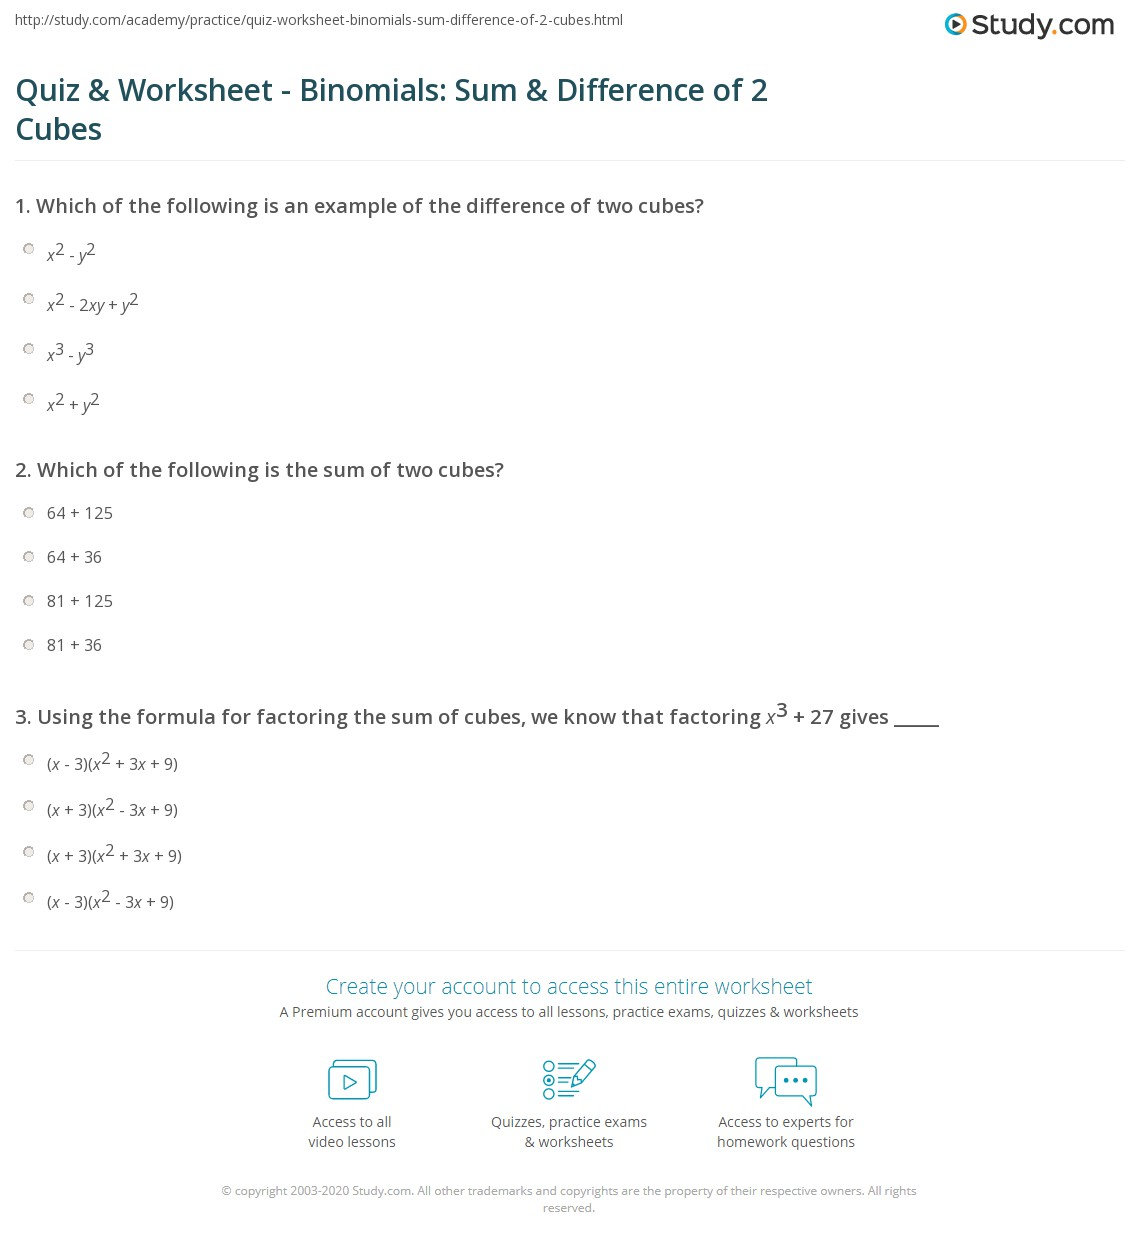 Quiz Worksheet Binomials Sum Difference Of 2 Cubes Study Com